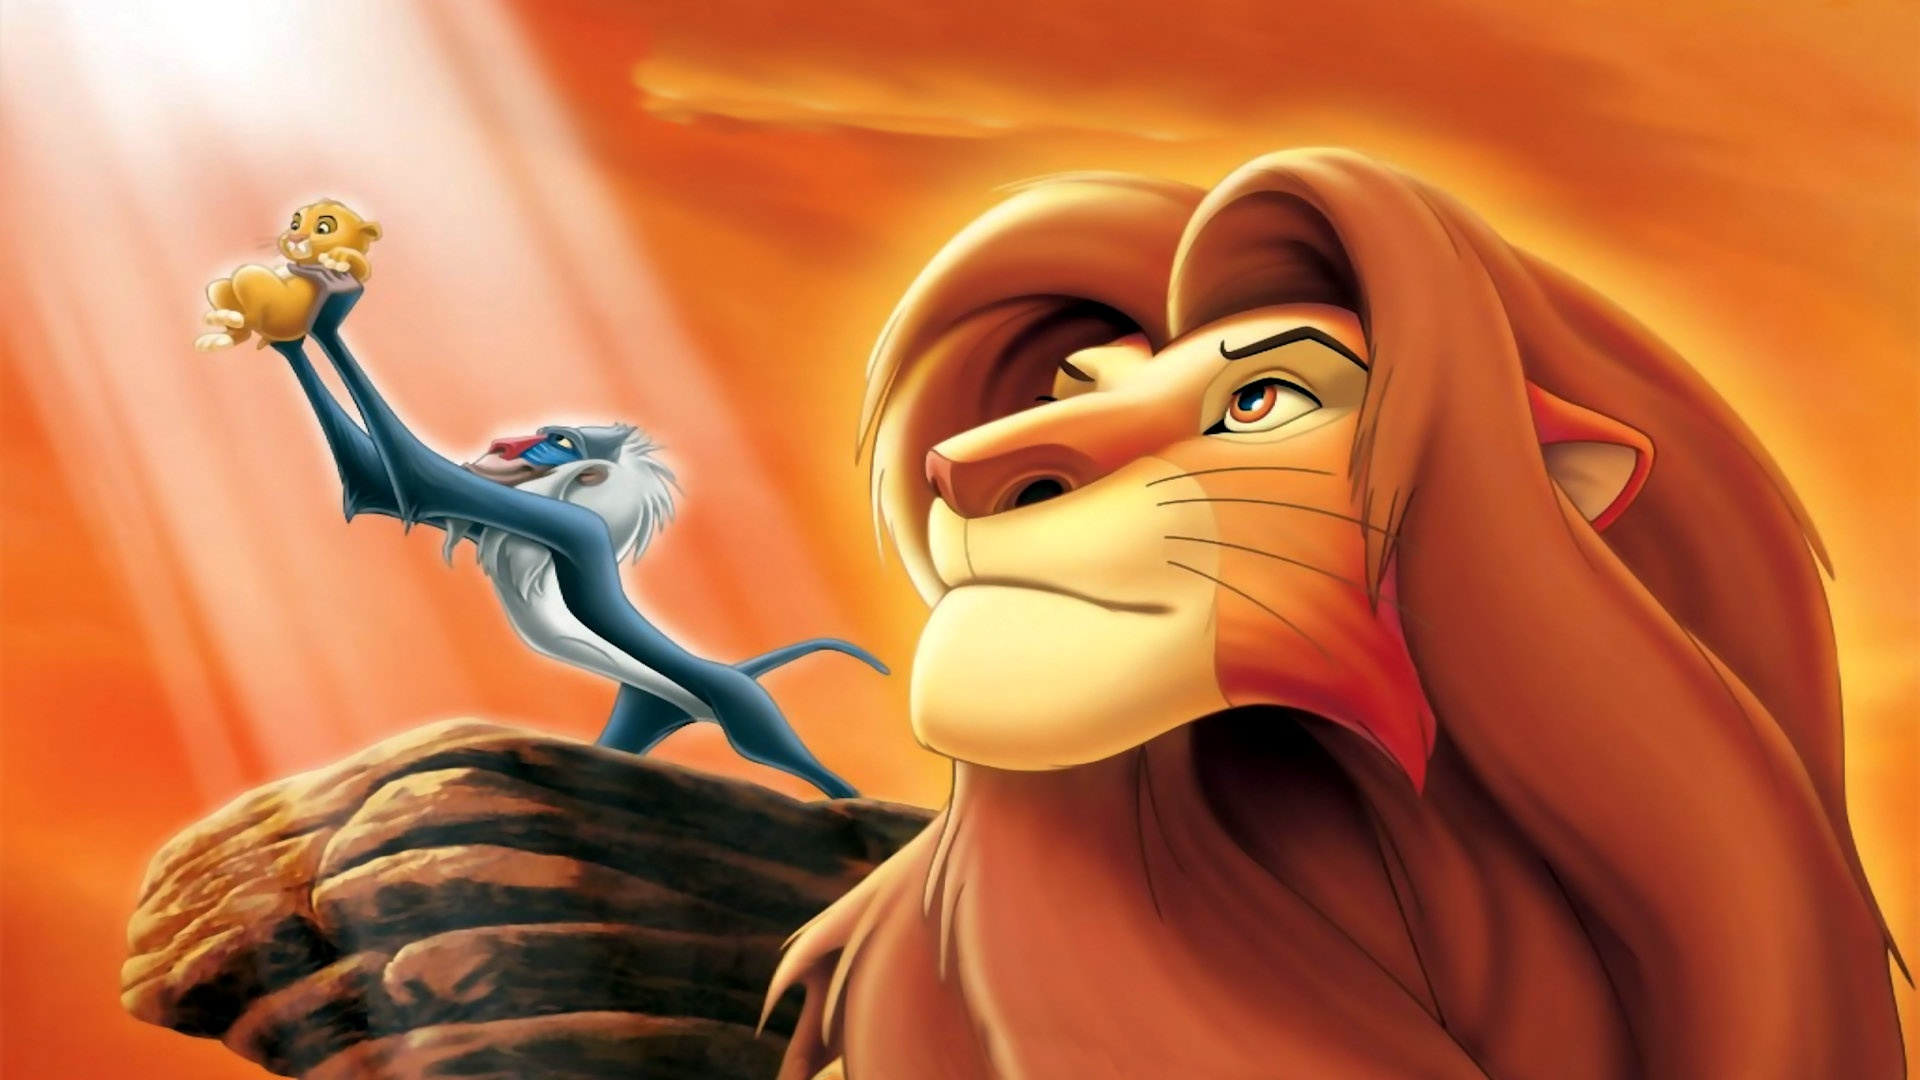 The Lion King Disney   HD Celebrity Wallpapers   The Lion King Disney 1920x1080